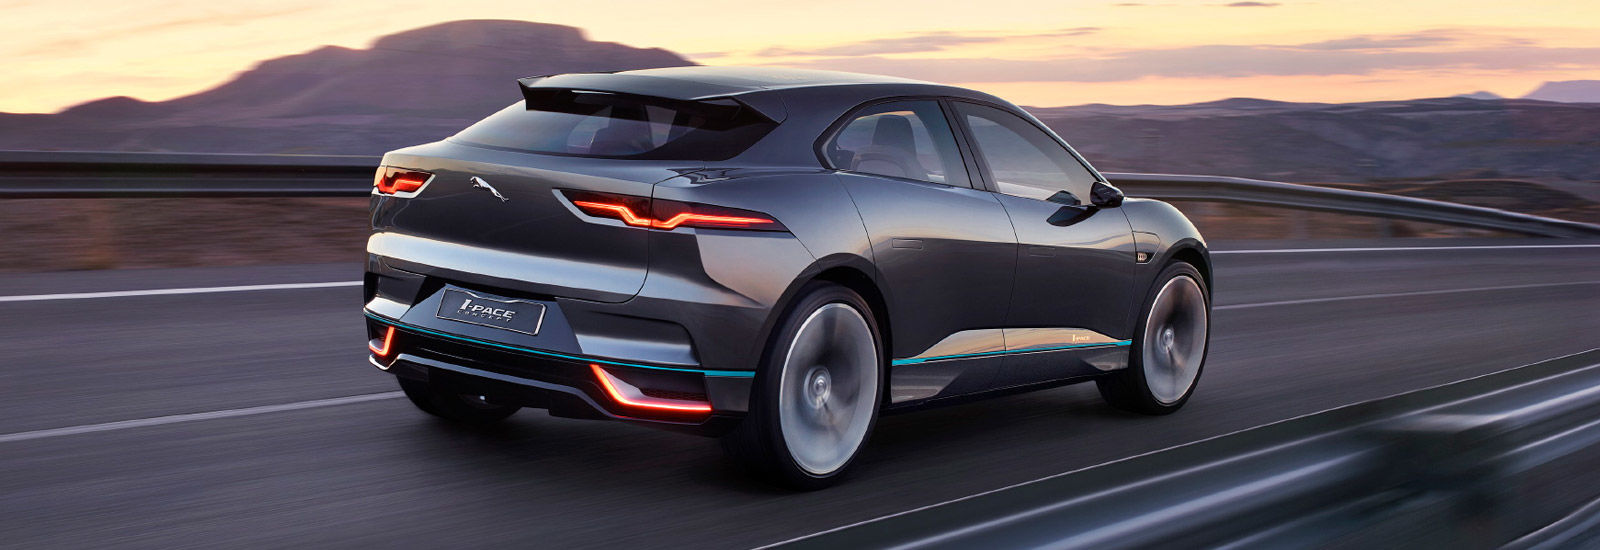 Index furthermore mande Moteur in addition Rydberg atom further Jaguar I Pace Price Concept Price Specs Release Date 3271 additionally Urb E Scooter Gessato Gblog 19. on electric charge